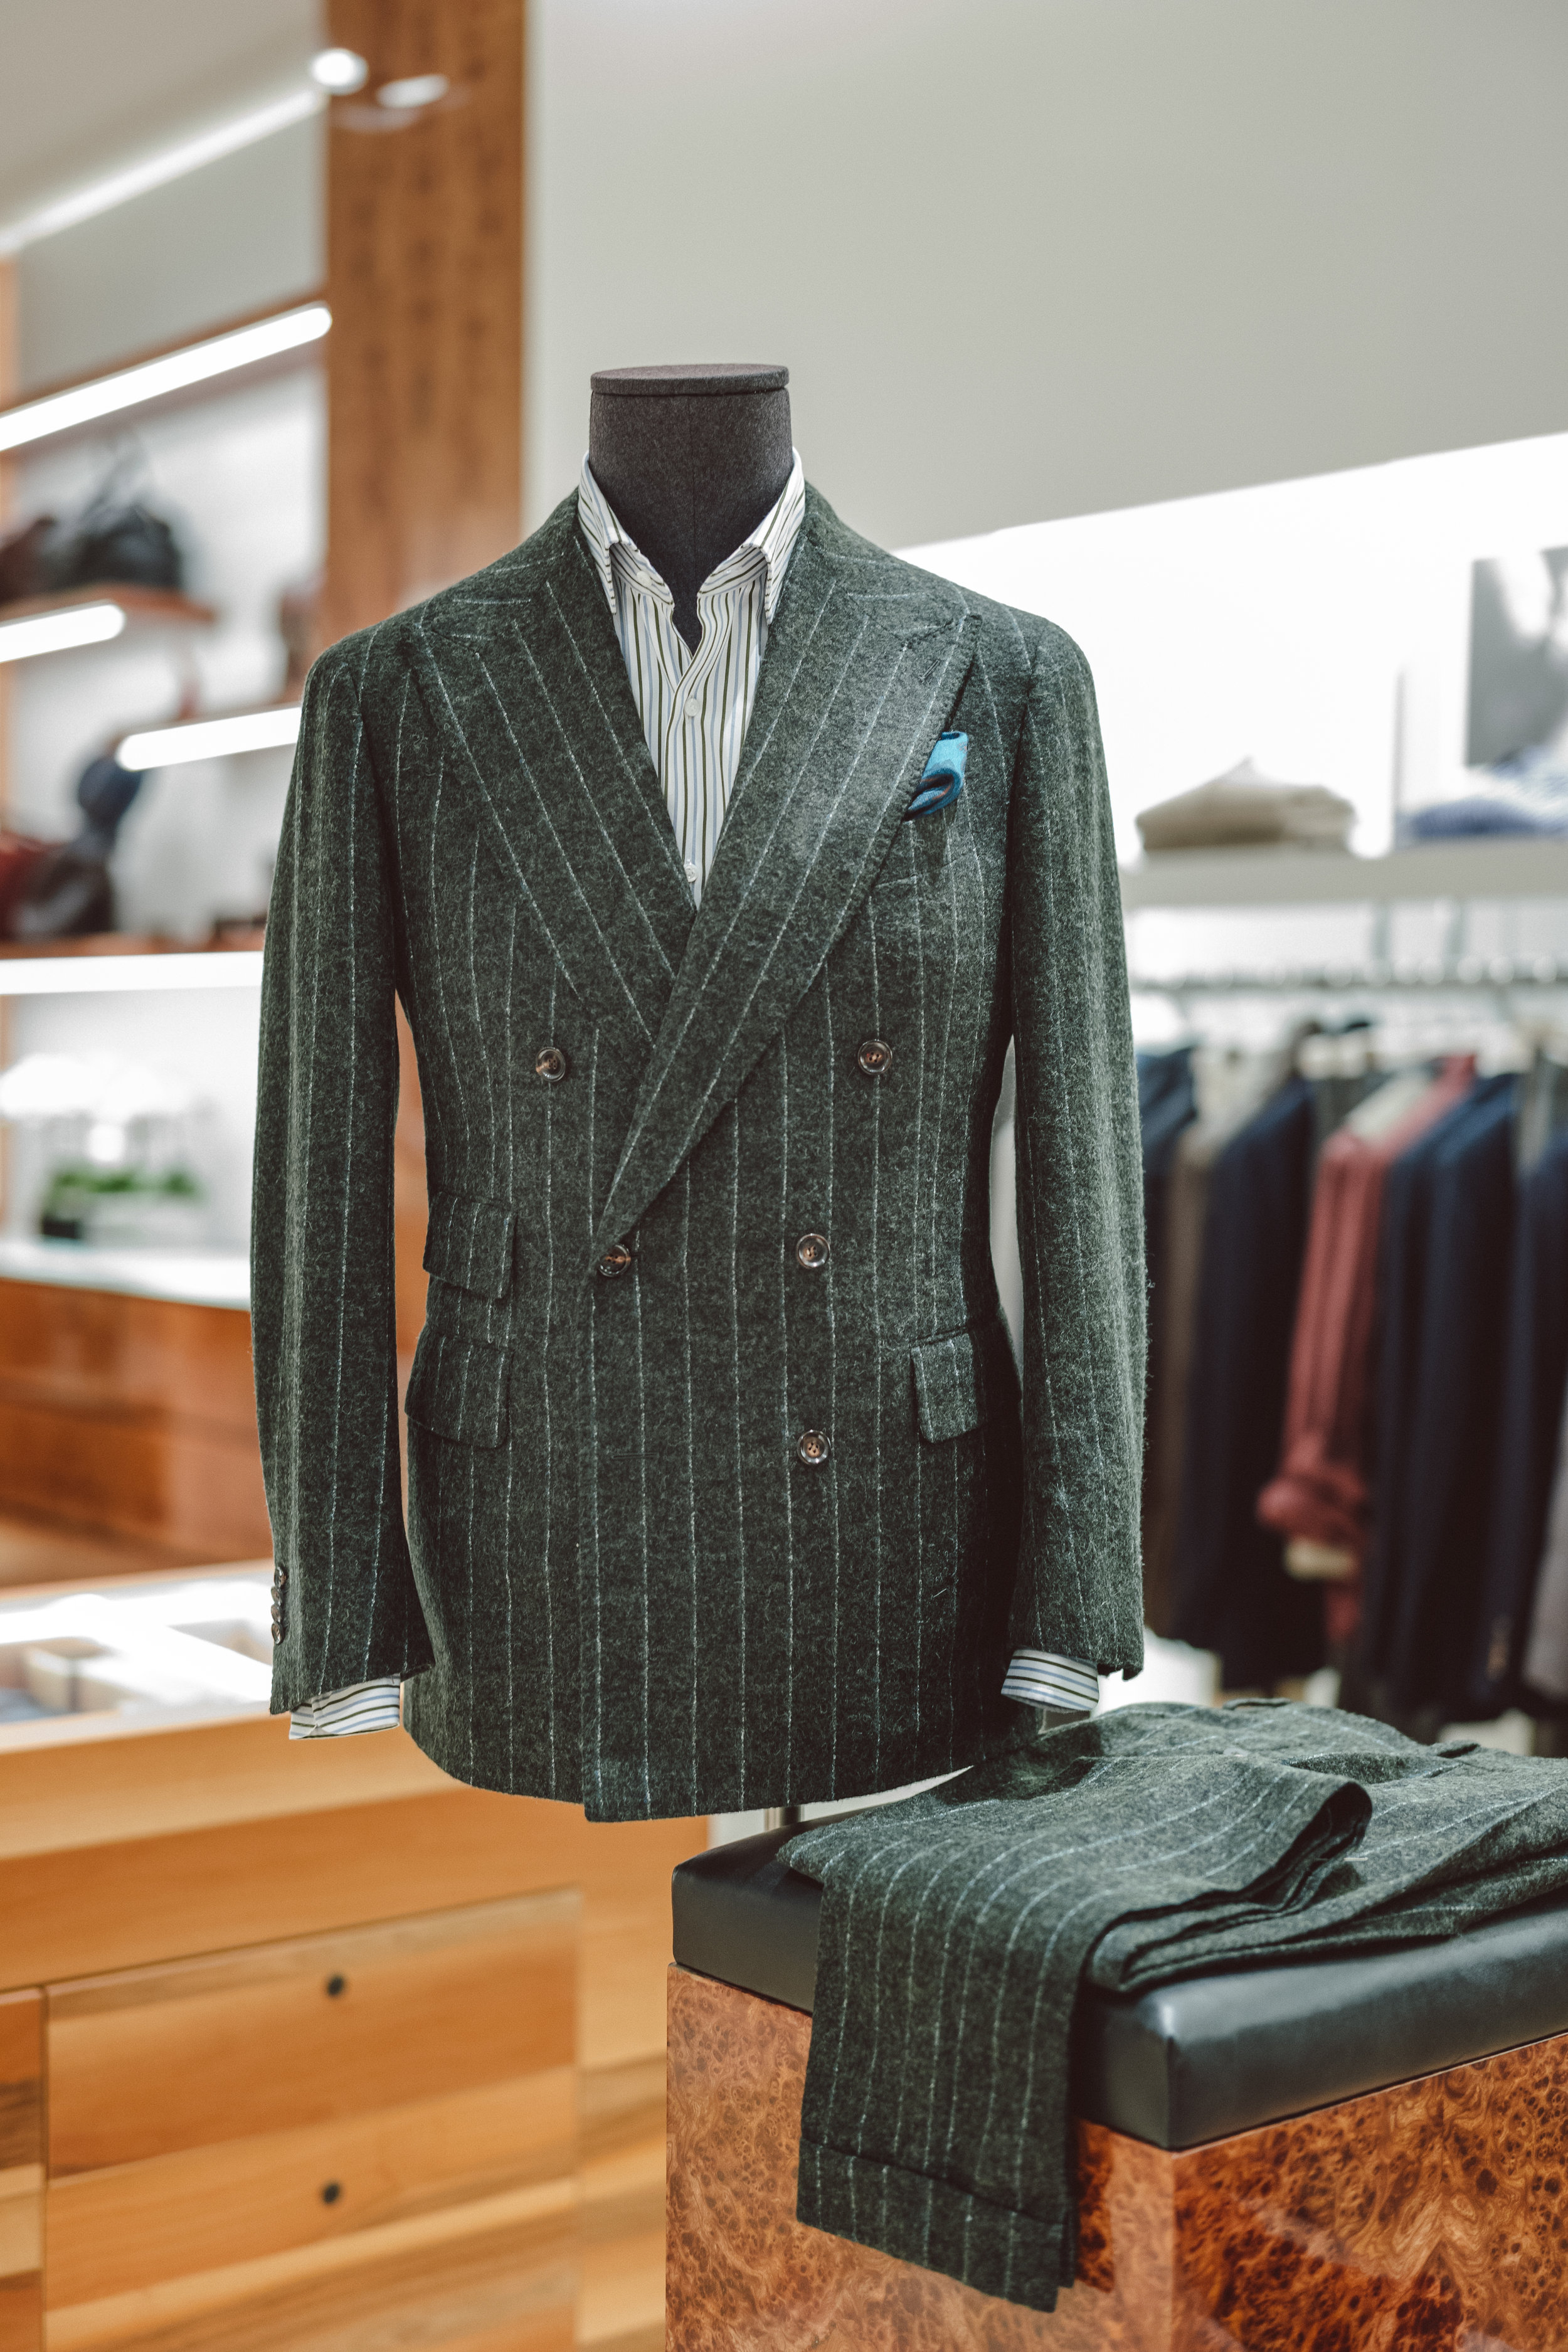 Custom Made-to-Measure suit from our recent Stile Latino Trunk Show